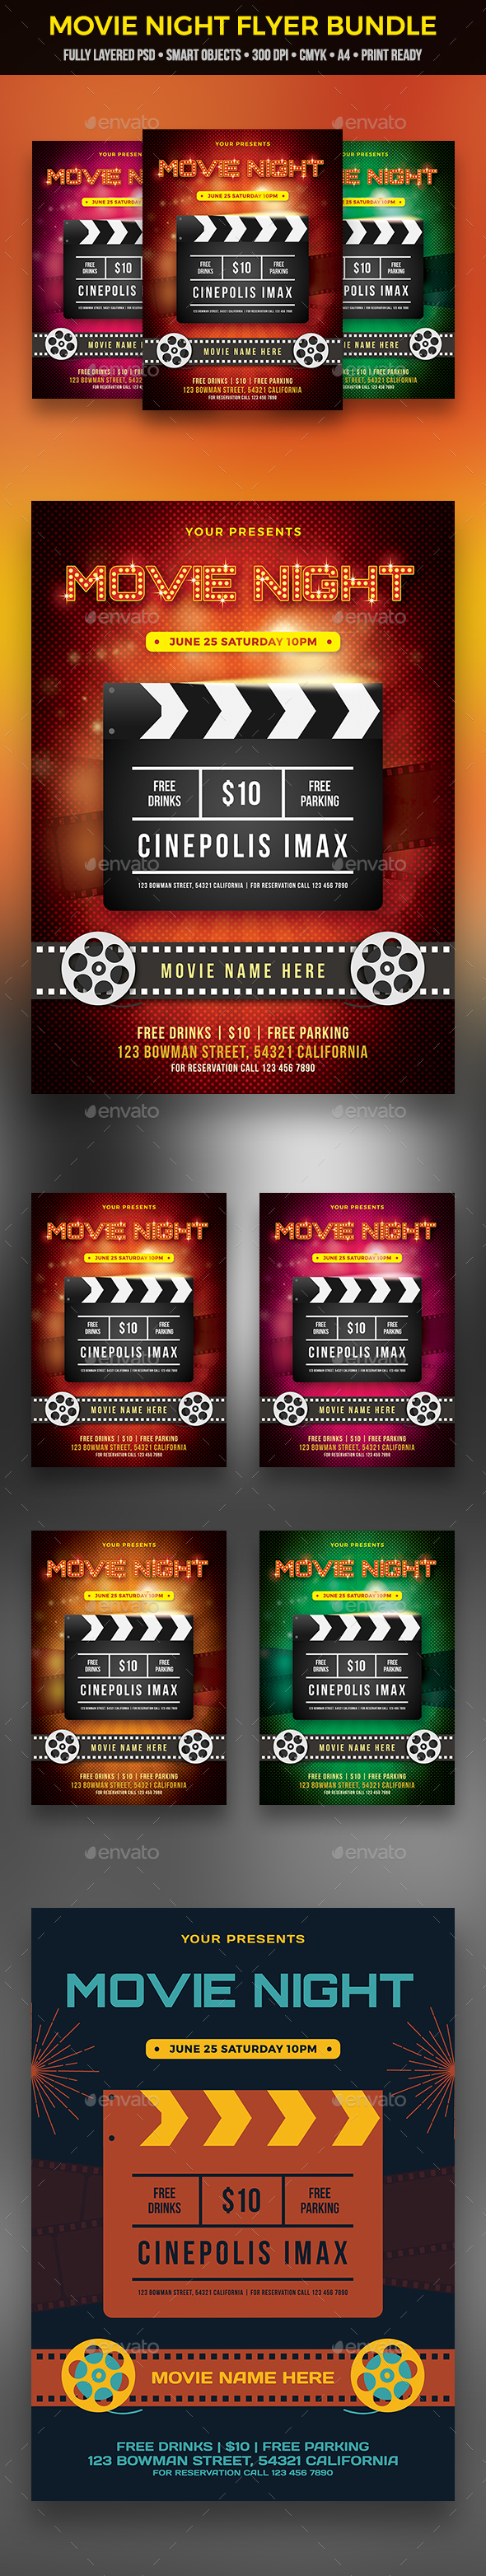 Movie Night Flyer Bundle - Clubs & Parties Events